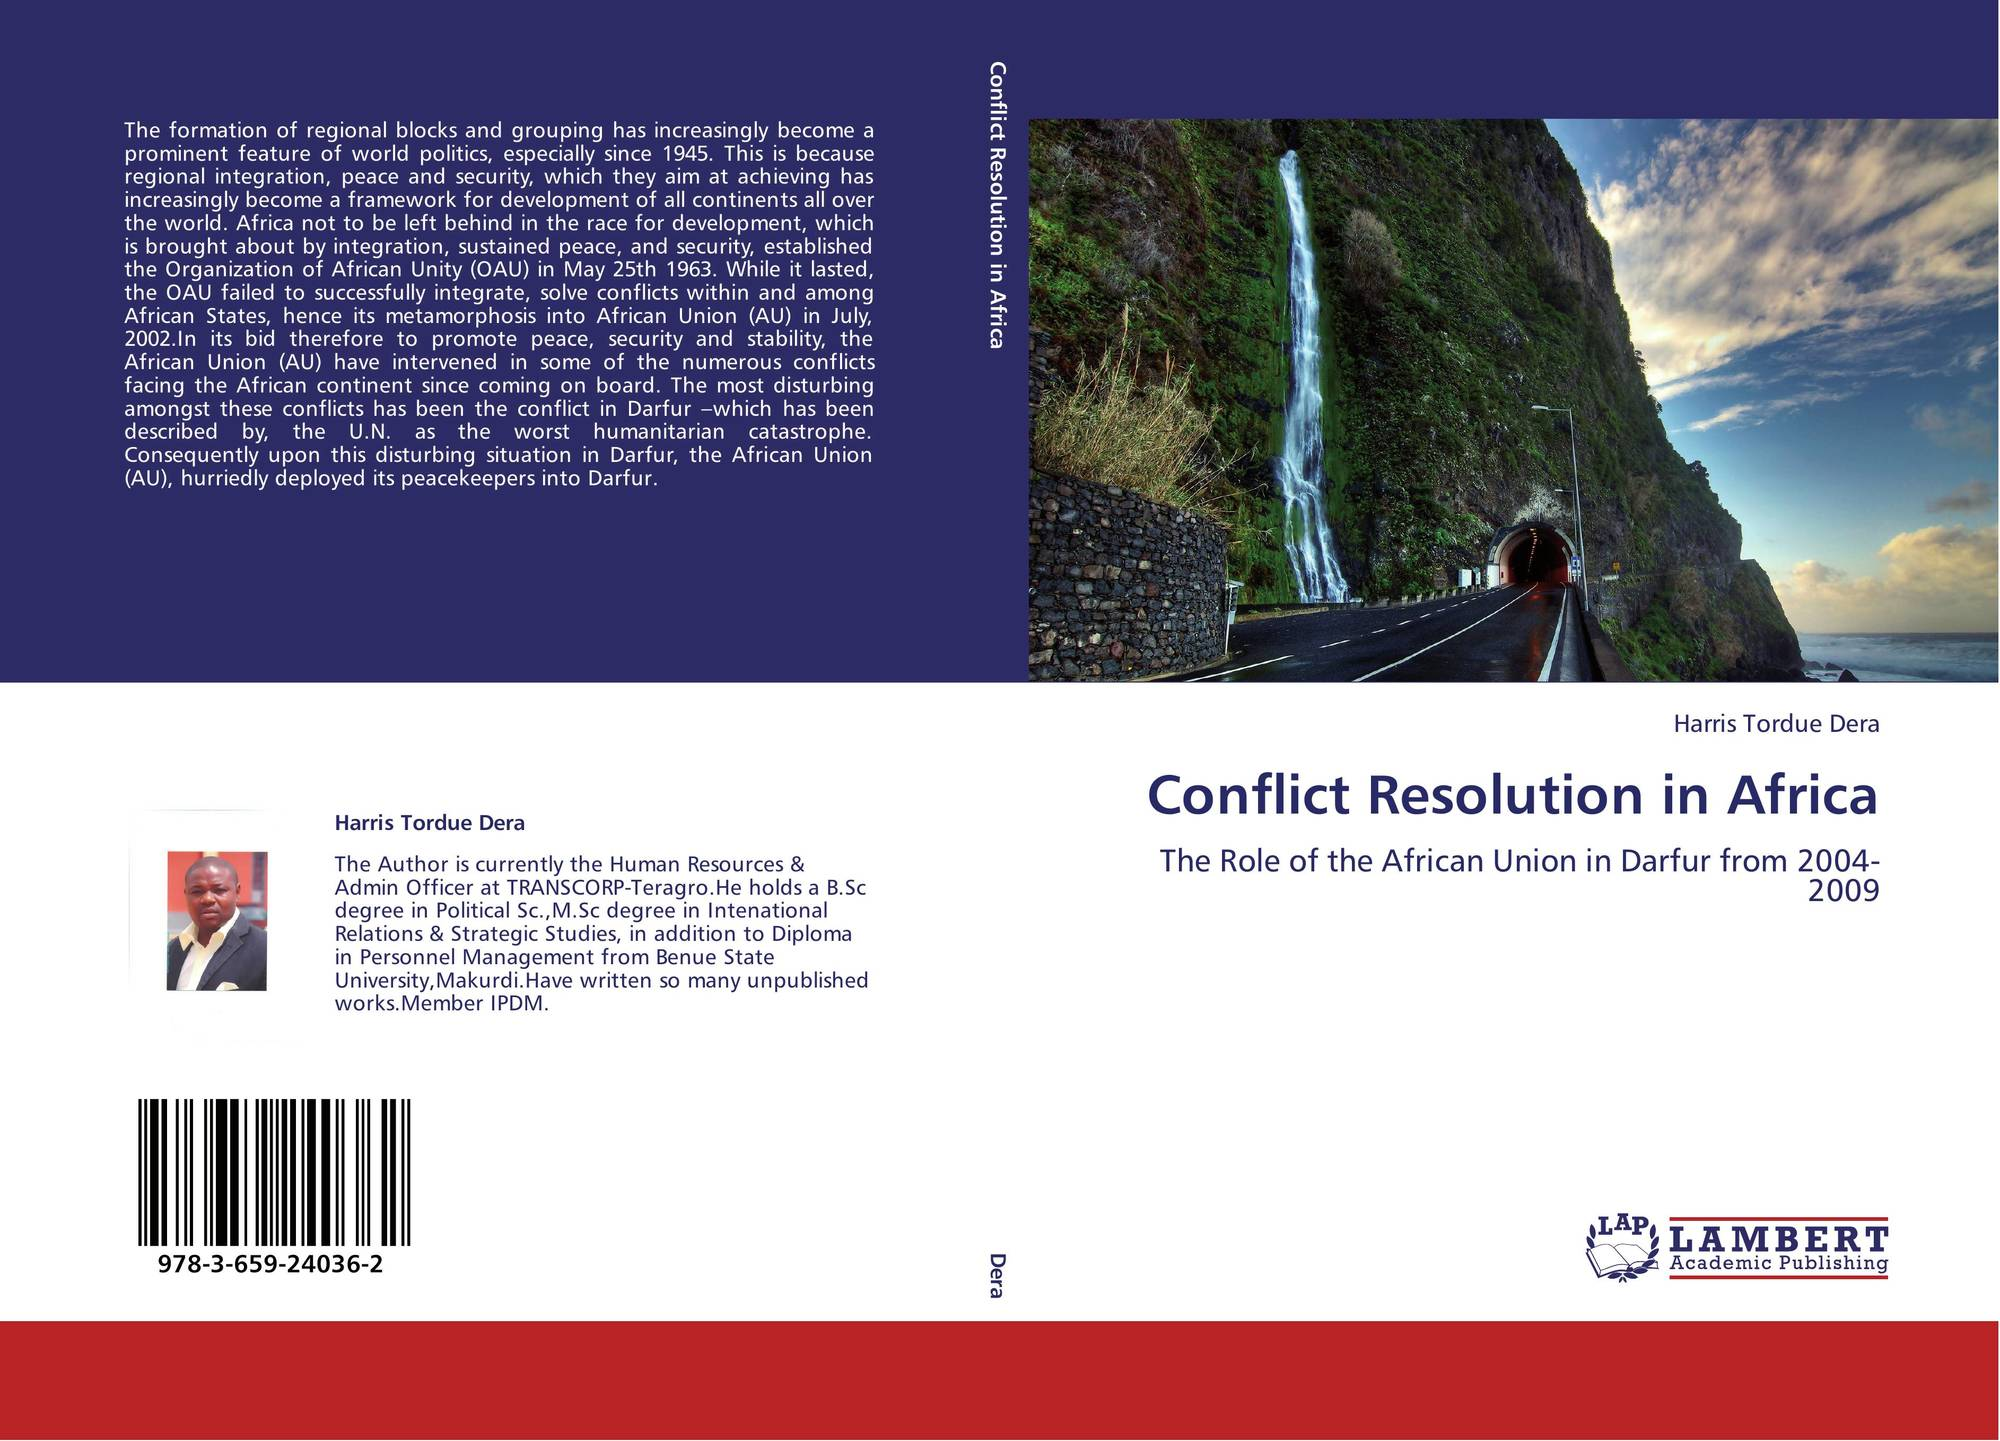 peace and conflict resolution in africa South sudan: kiir adviser pens recipe for peace east africa: museveni - drop violence as a means of conflict resolution africa: how will the somalia-uae row affect amisom somalia: the independent expert, amisom discuss human rights rwanda: rwanda to chair au peace and security council this month.